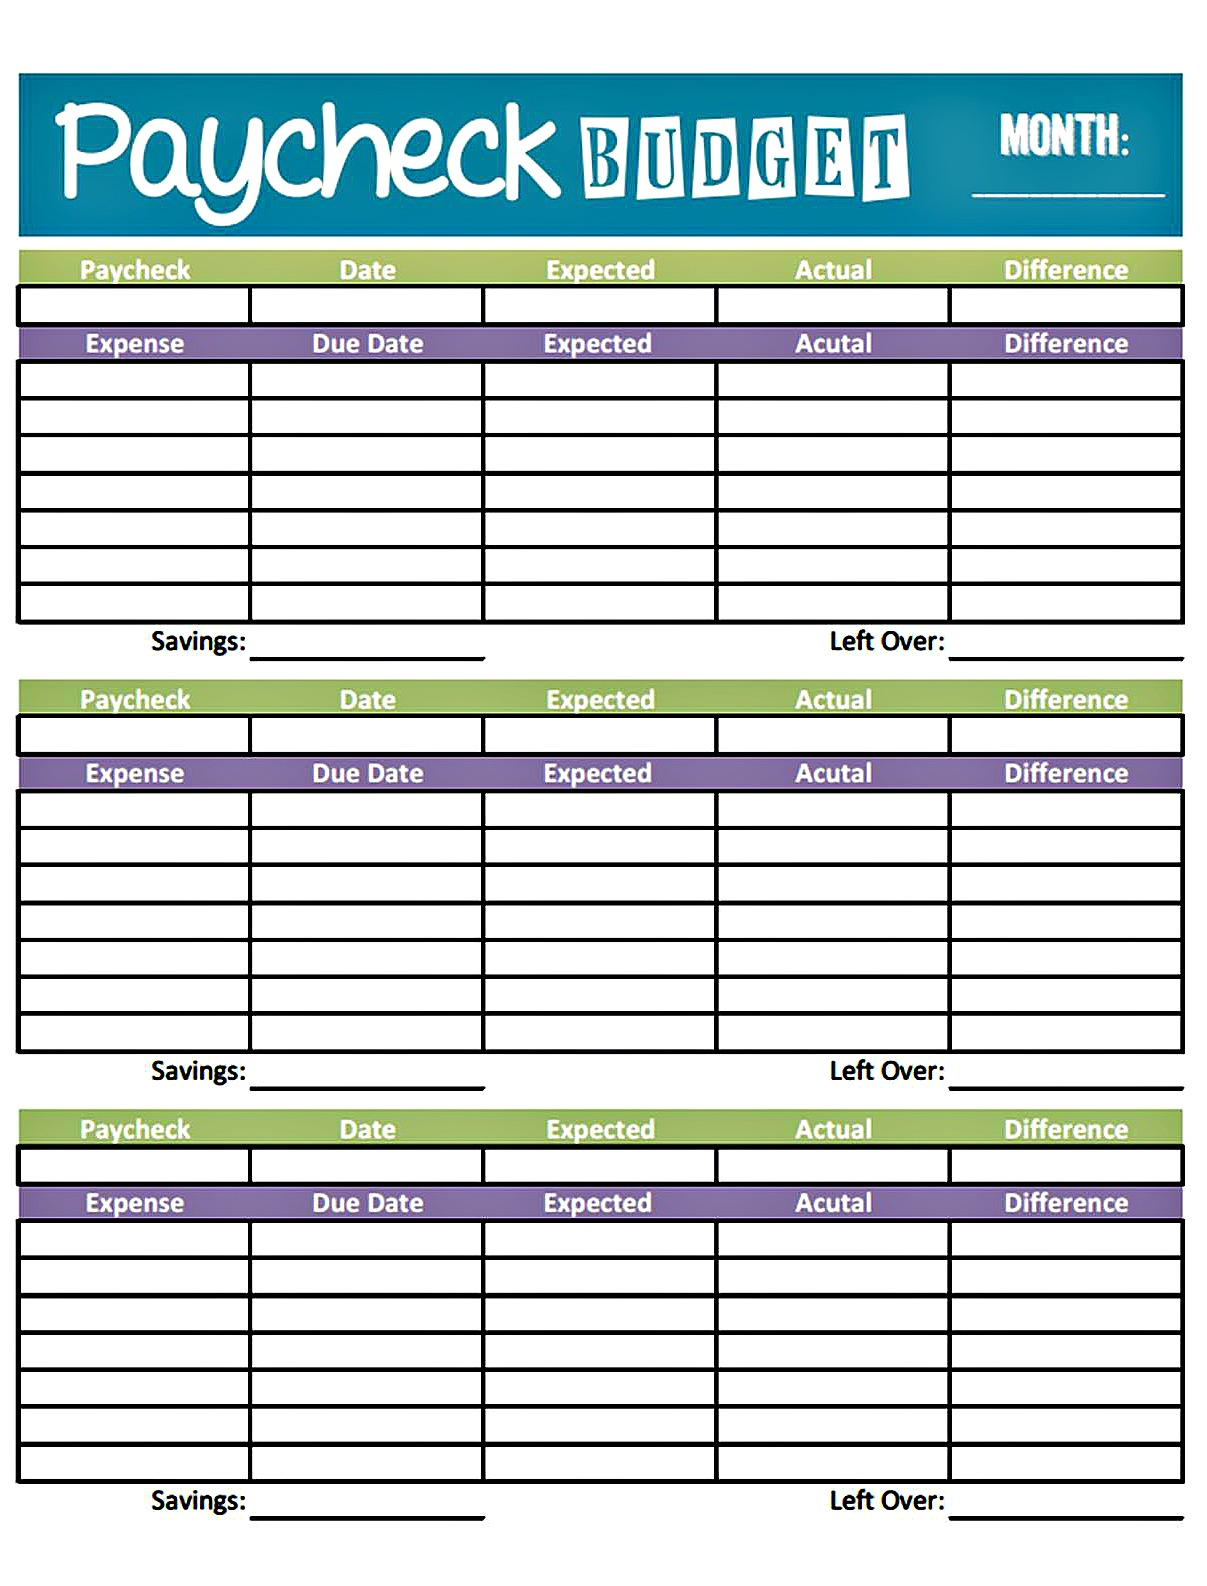 Free Worksheet Interactive Budget Worksheet printable household budget template free worksheets calculator get paid weekly and charlie gets bi so there 39 s several